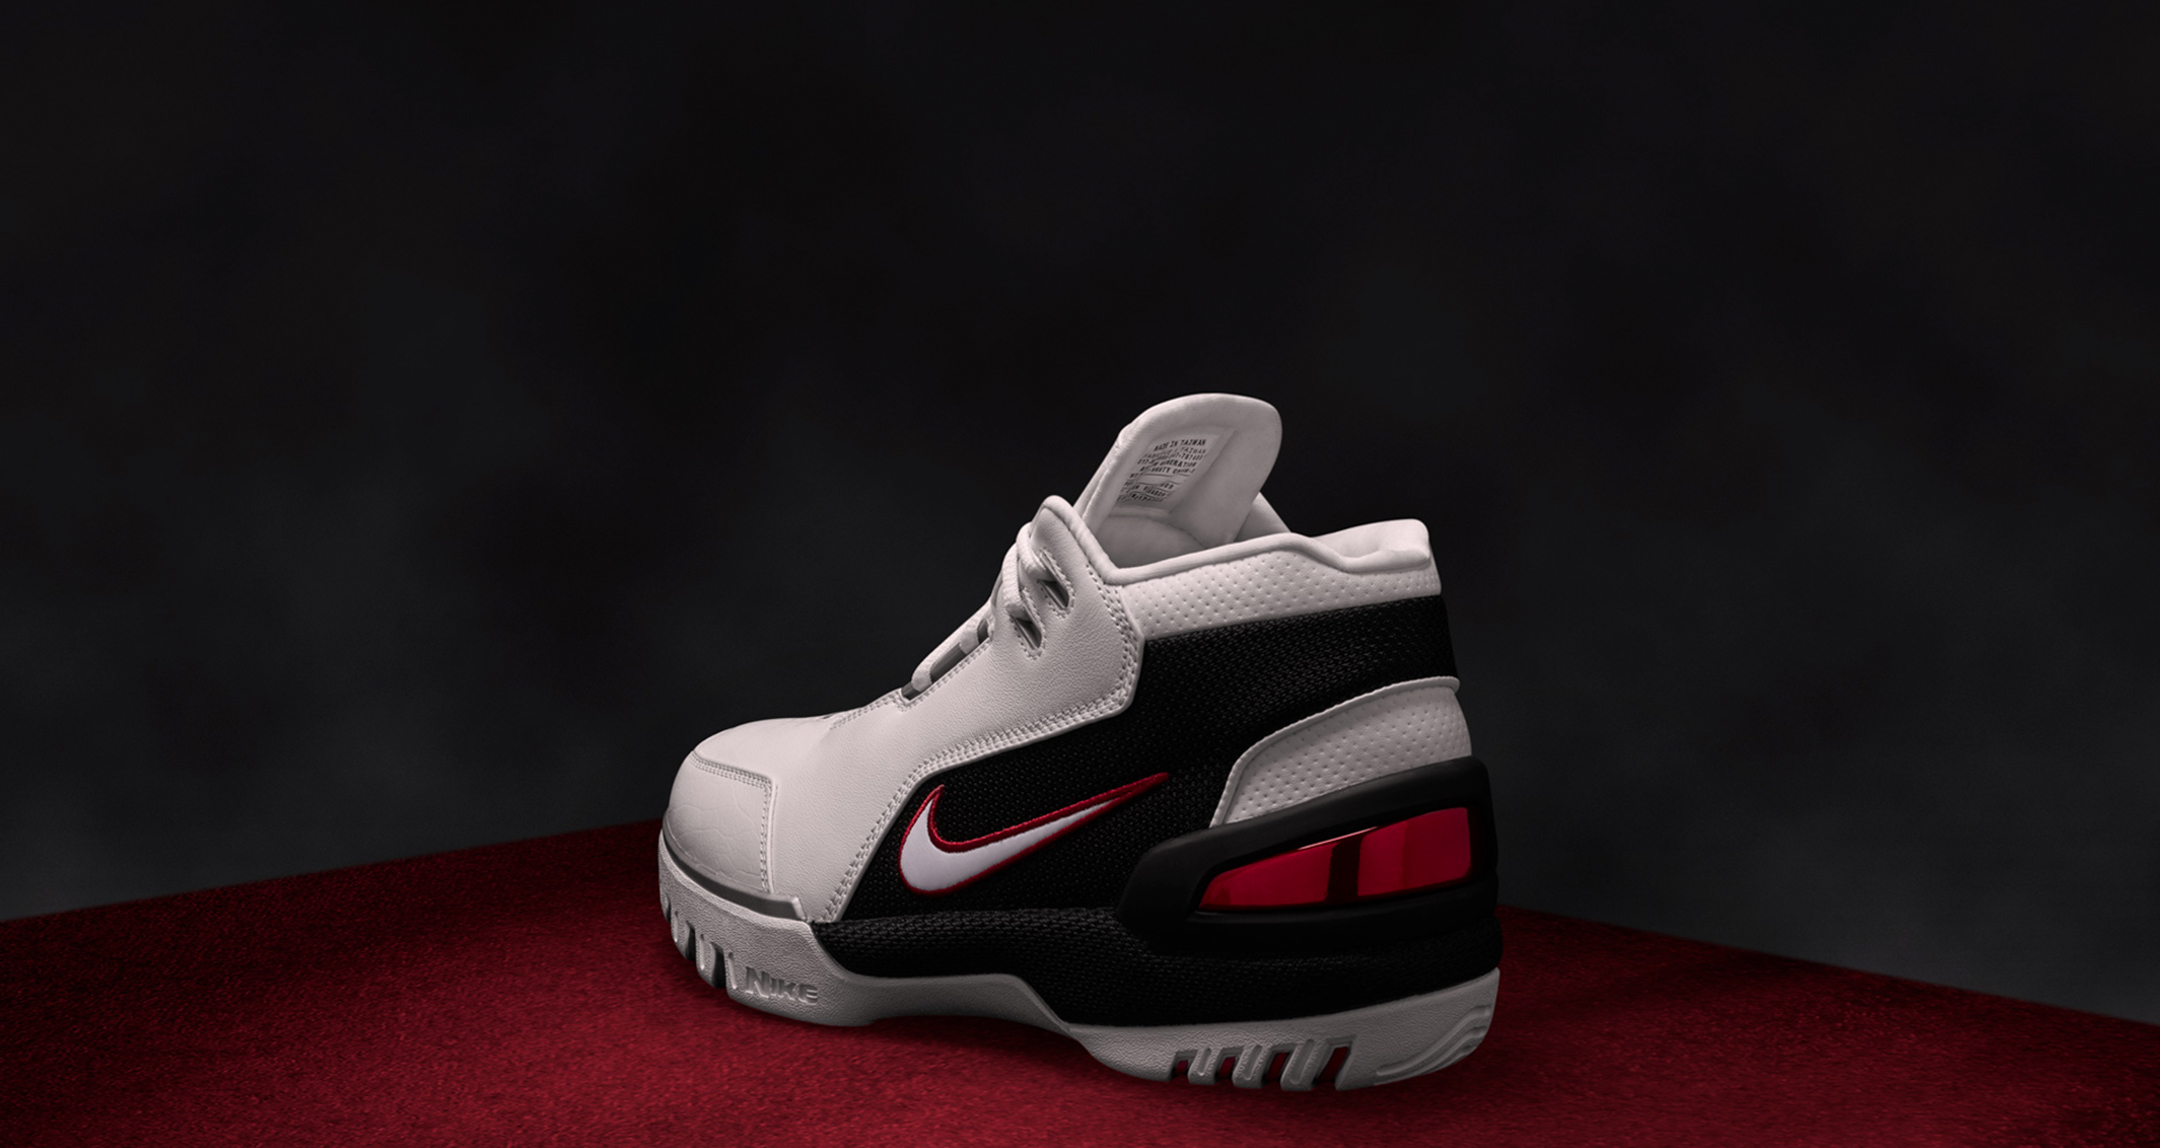 ea3f792a536 The second of three shoes linked to the LeBron James Strive For Greatness  Show Manila 2017